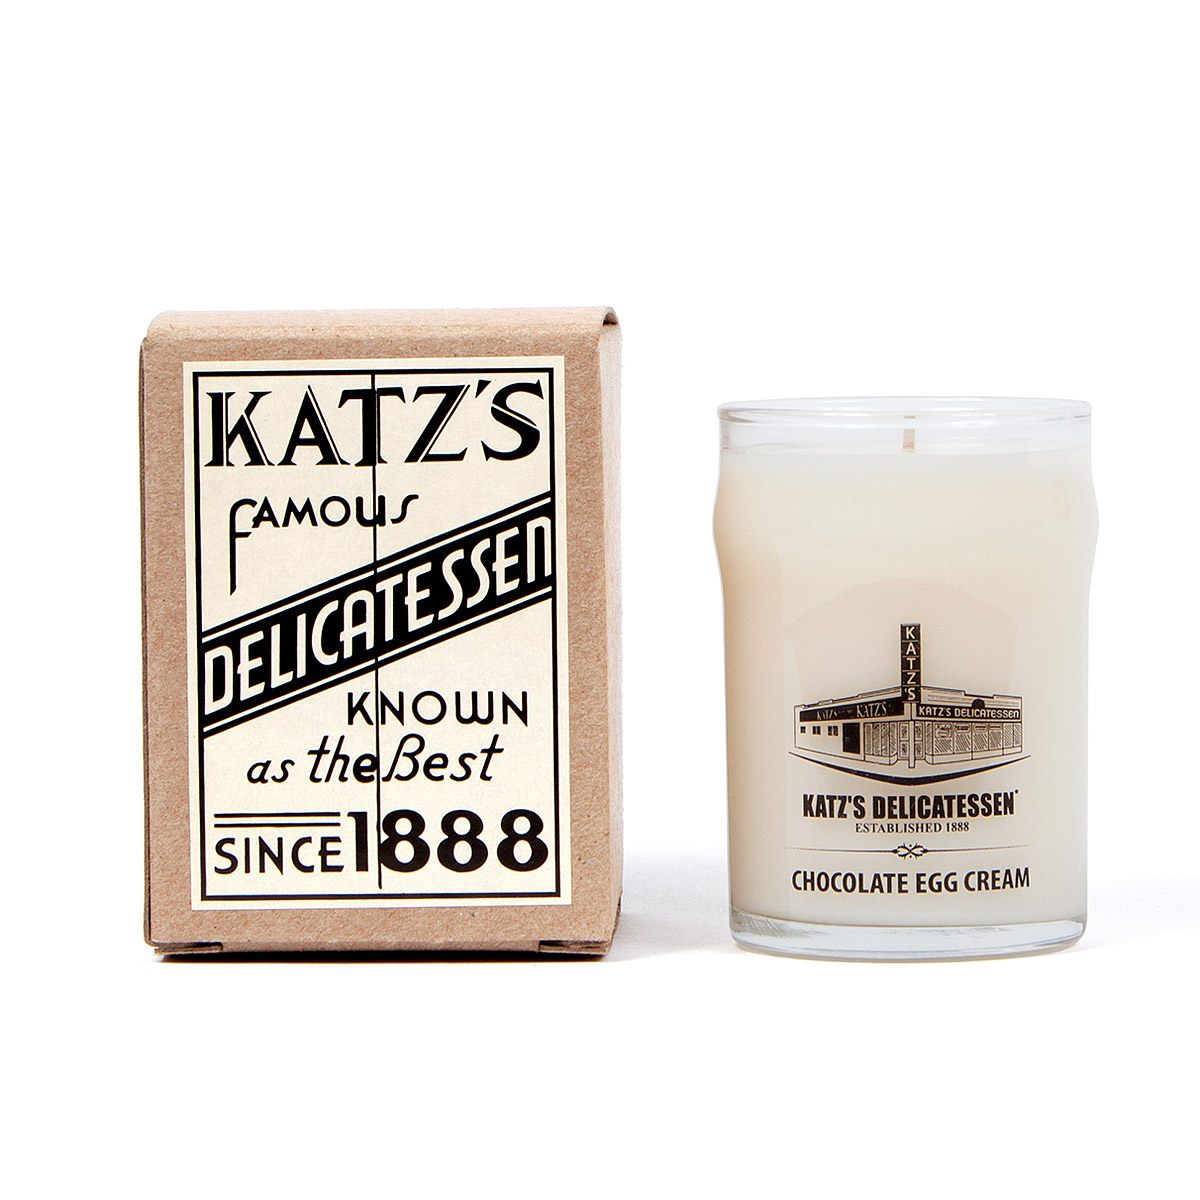 KATZ'S CHOCOLATE EGG CREAM CANDLE | New York, Manhattan, Katz Deli ...